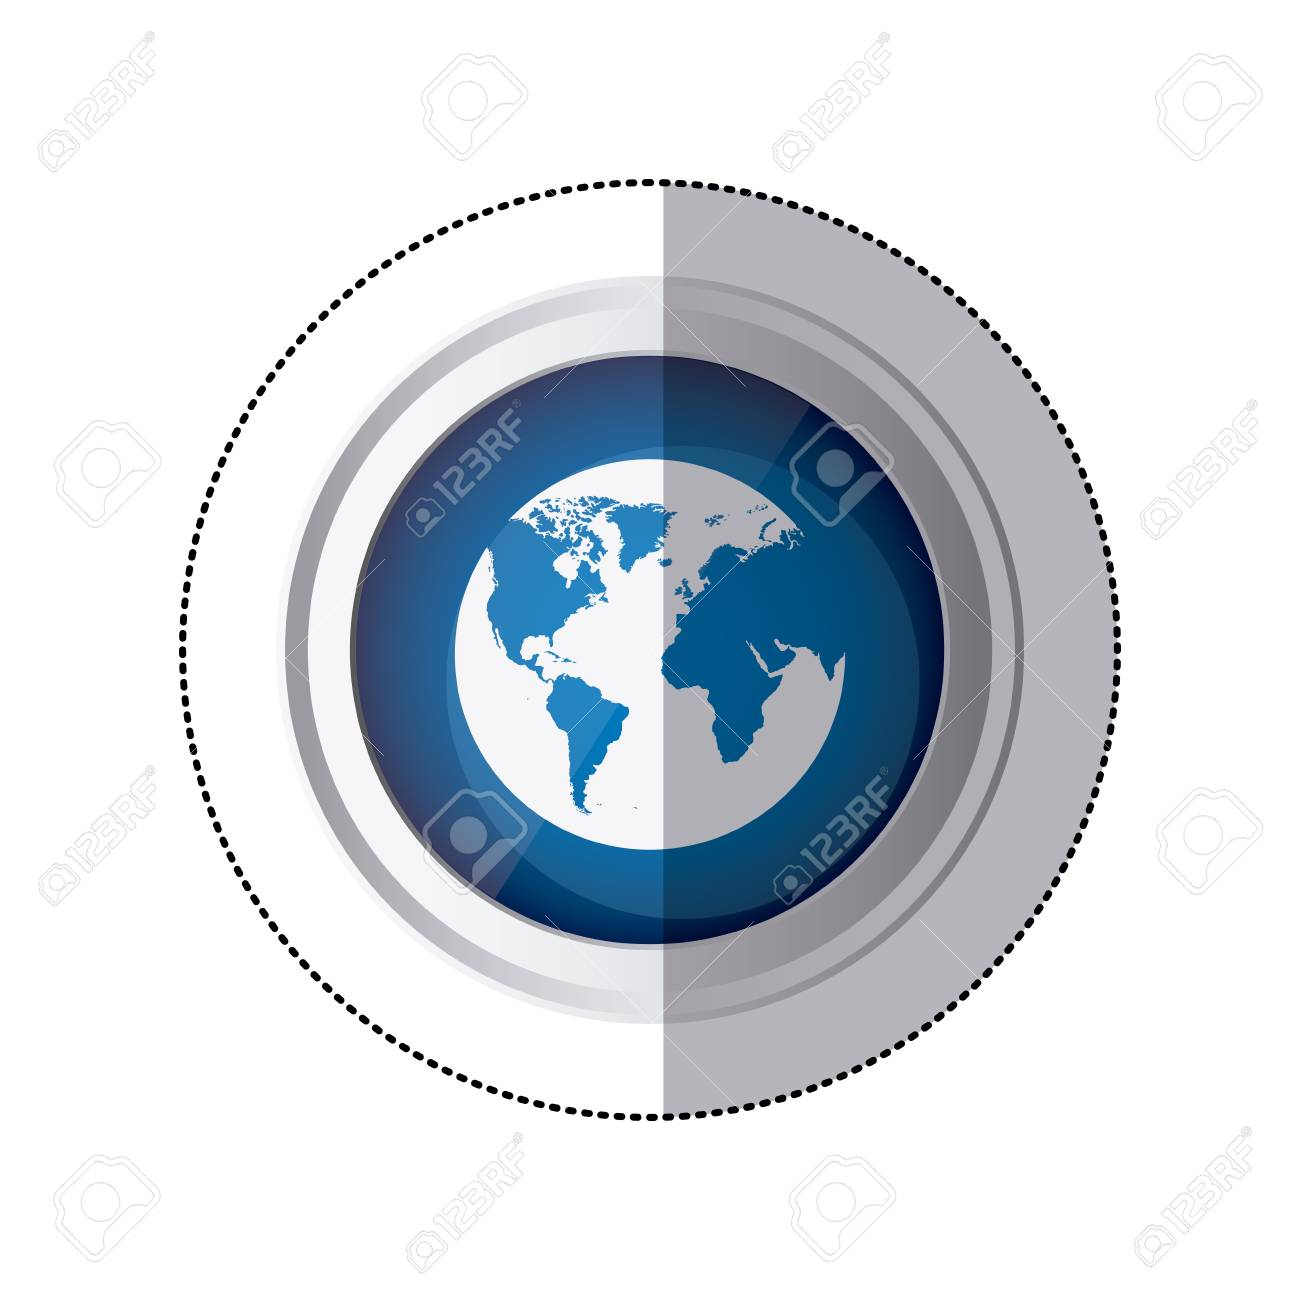 Sticker blue circular button with silhouette globe earth world sticker blue circular button with silhouette globe earth world map vector illustration stock vector 72908705 gumiabroncs Images